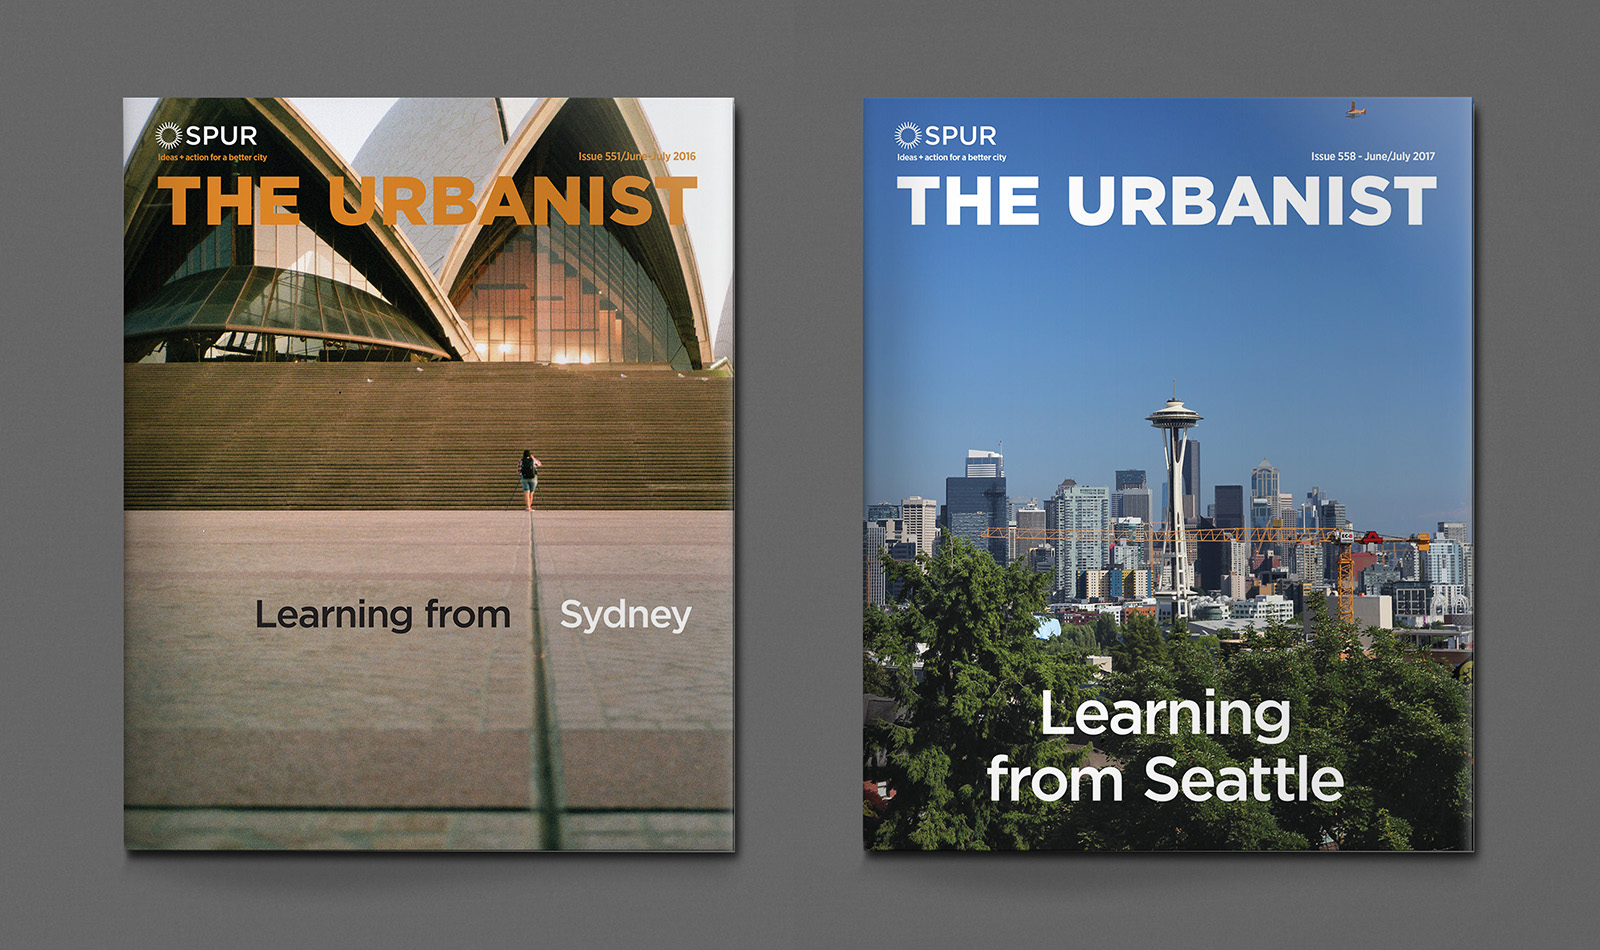 urbanist-covers-2016-2017-hazen